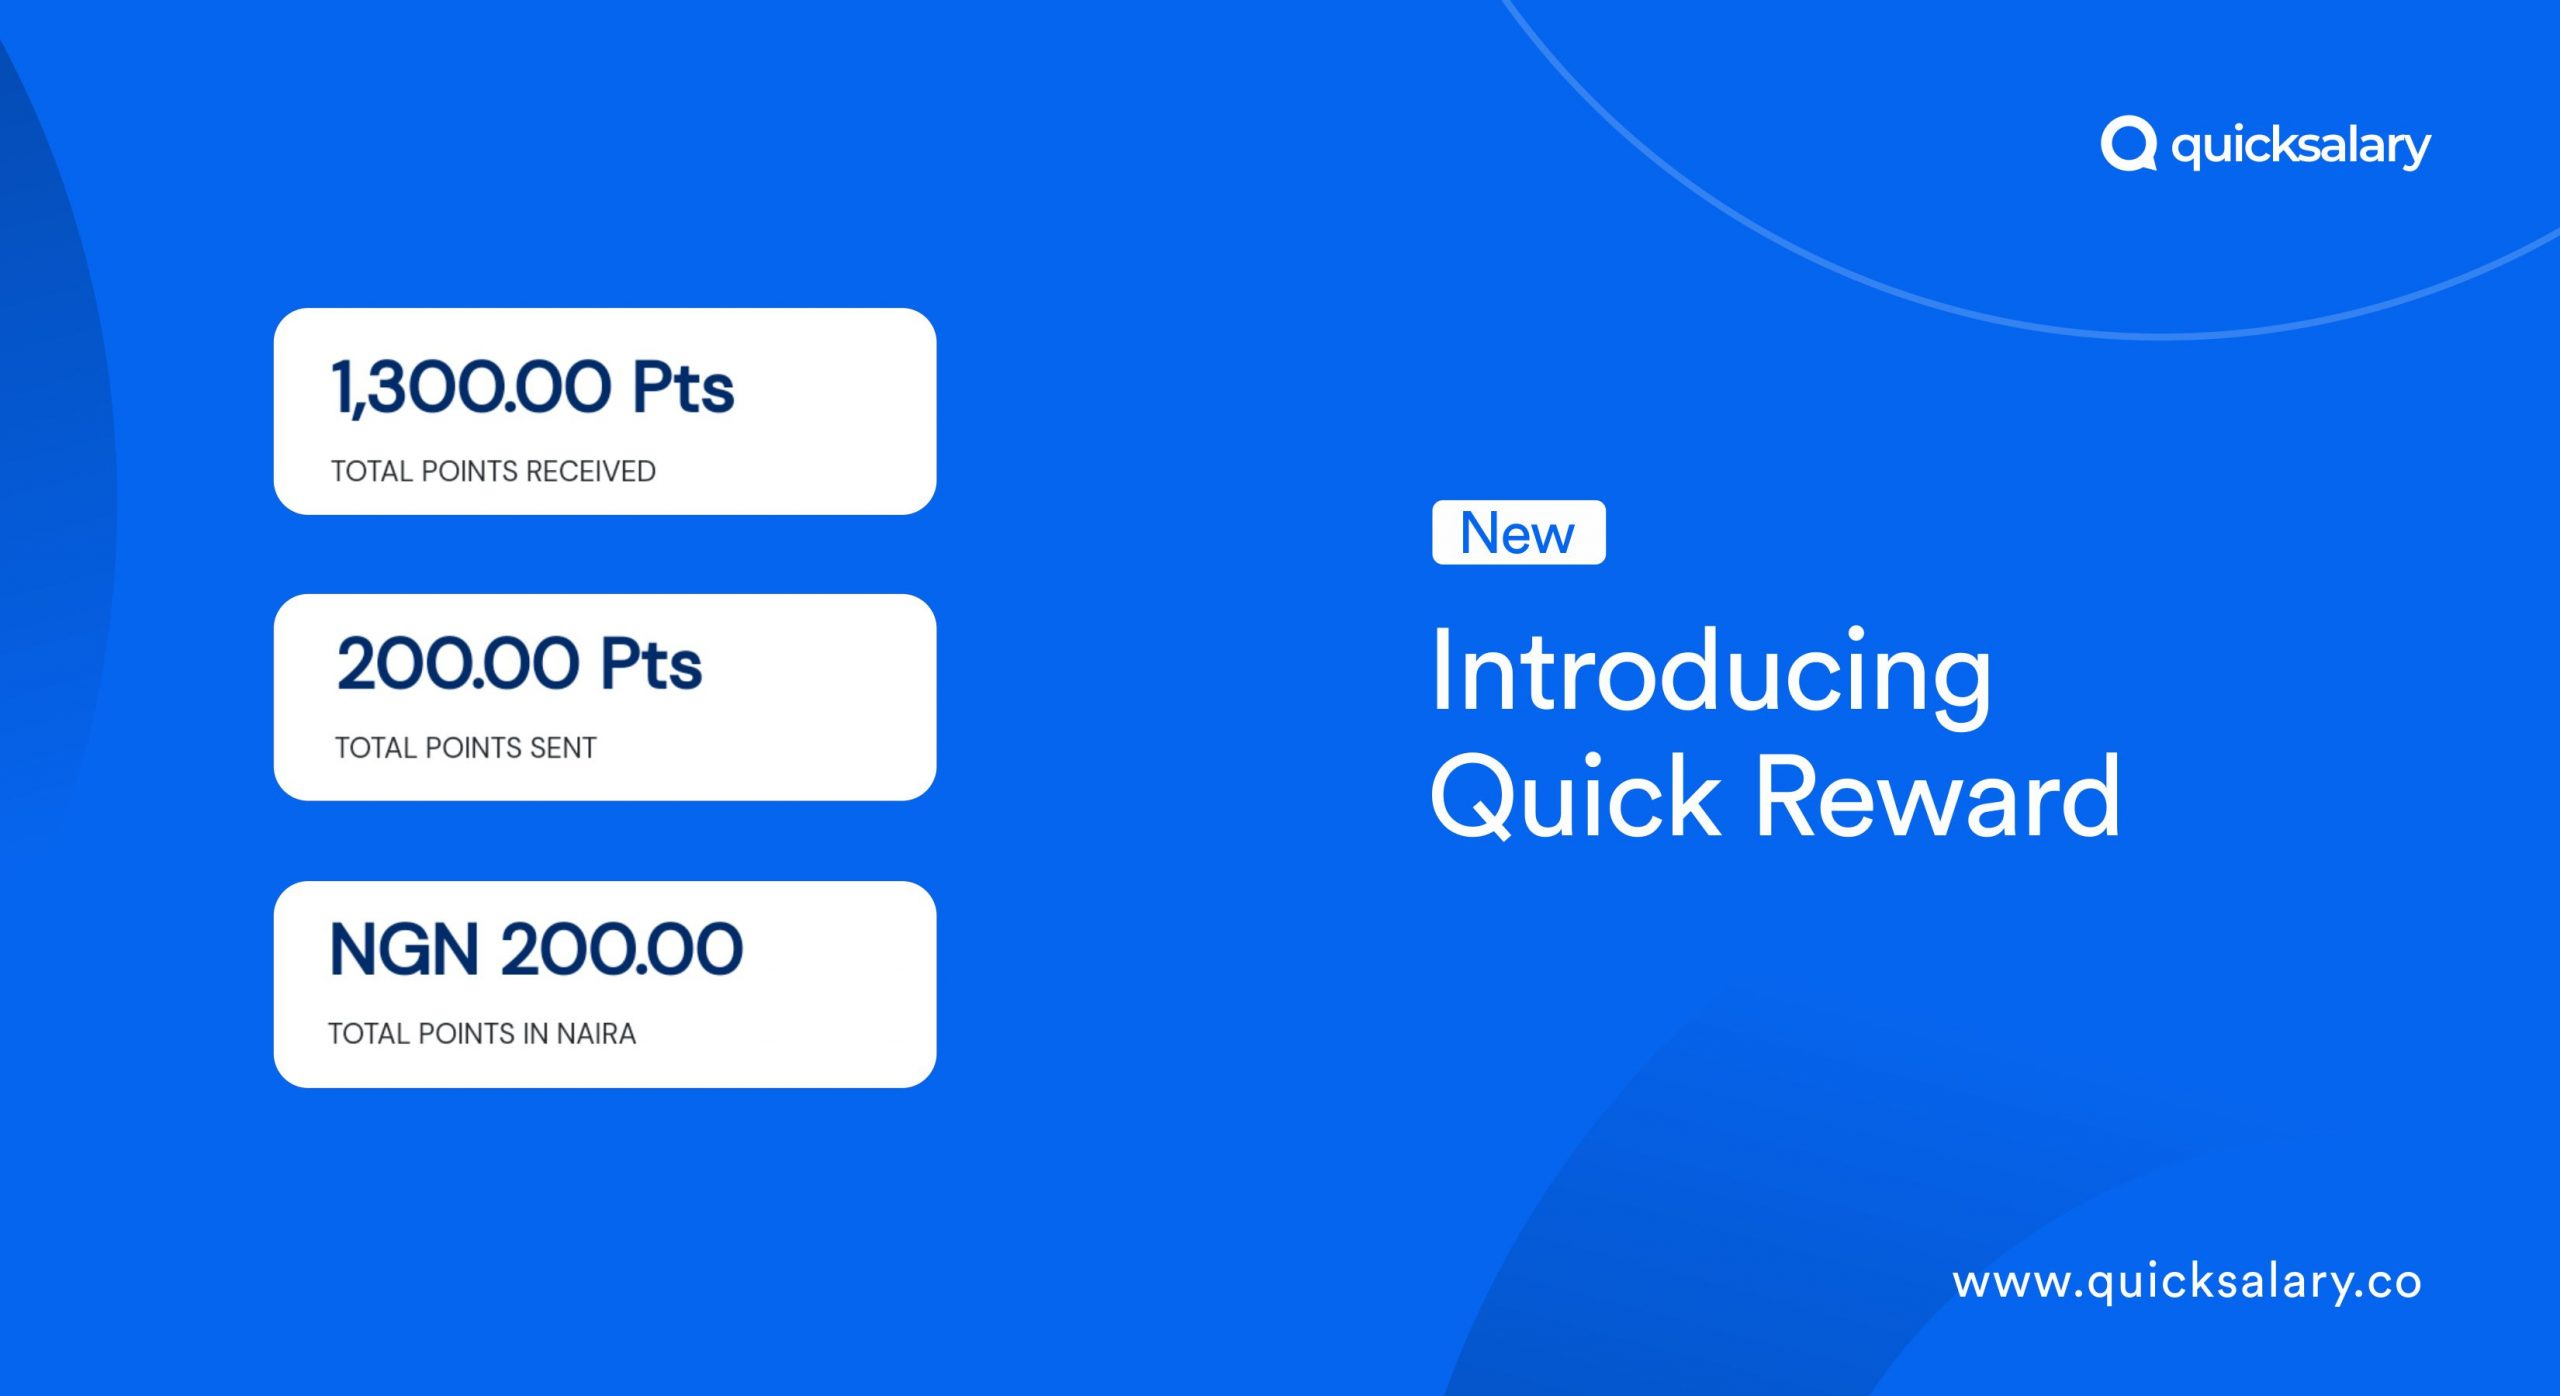 Introducing Quick Reward